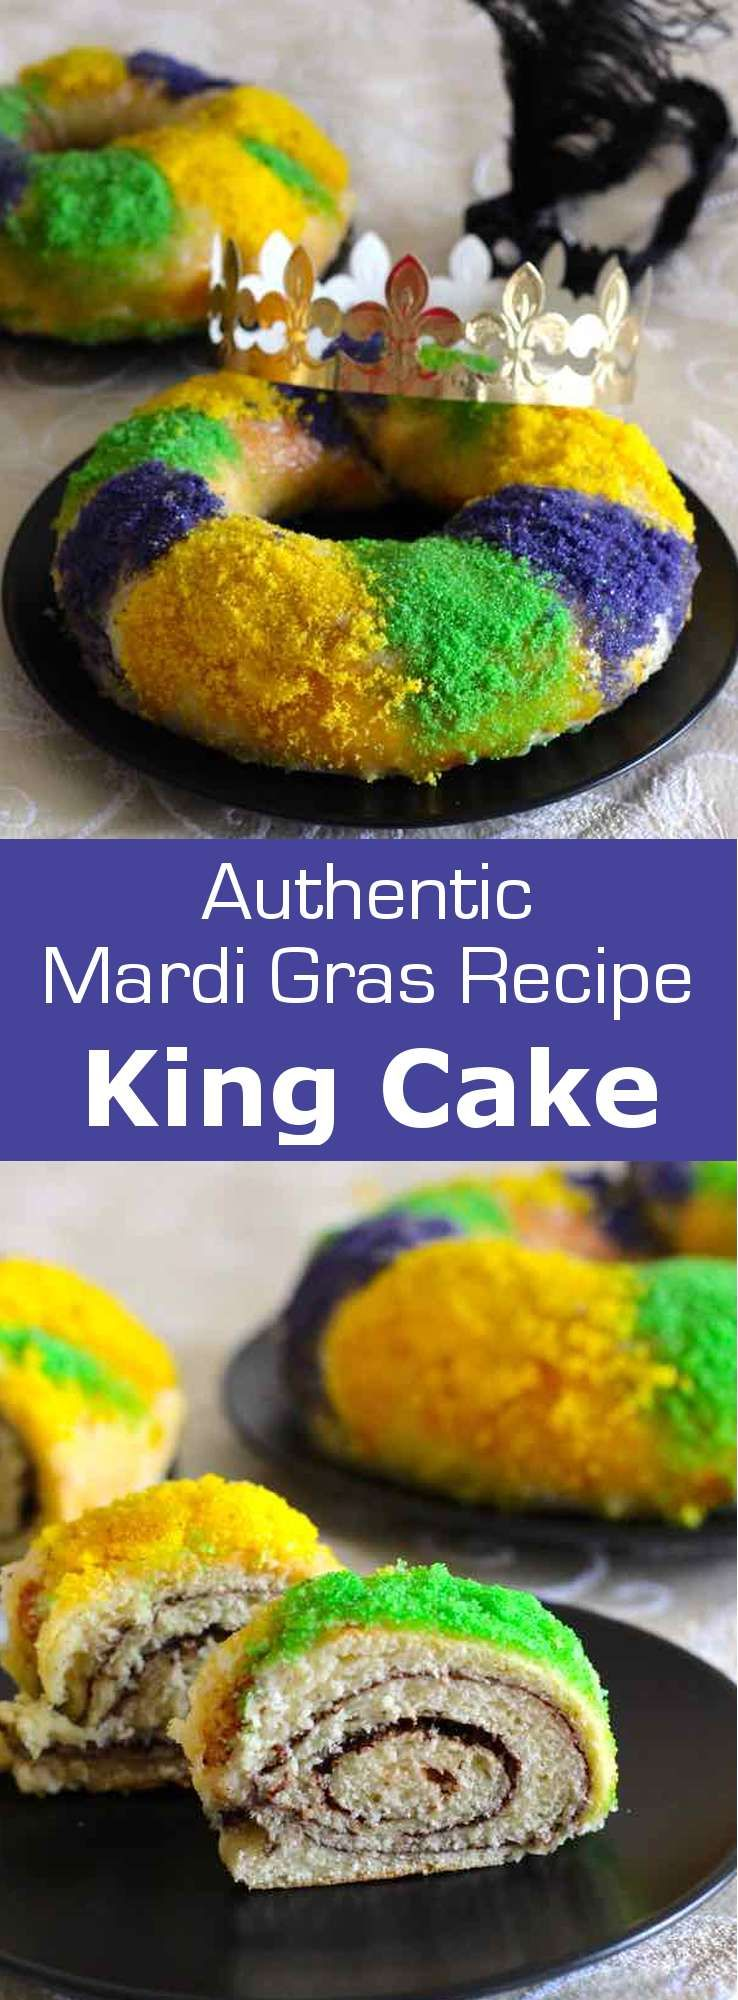 King Cake One Of The Most Popular Mardi Gras Traditions